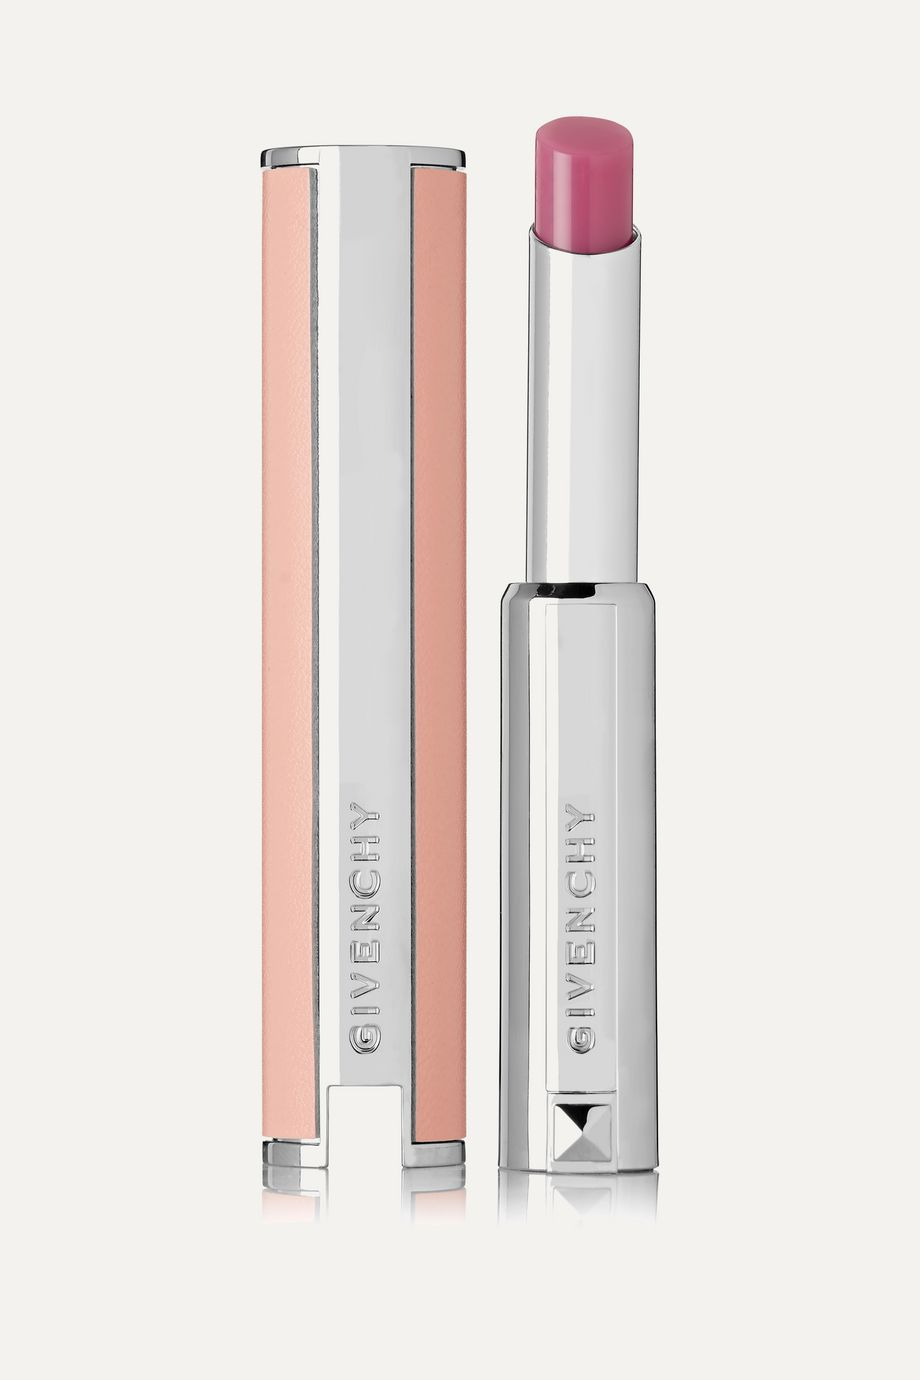 Givenchy Beauty Le Rouge Perfecto Lip Balm - Intense Pink No. 02